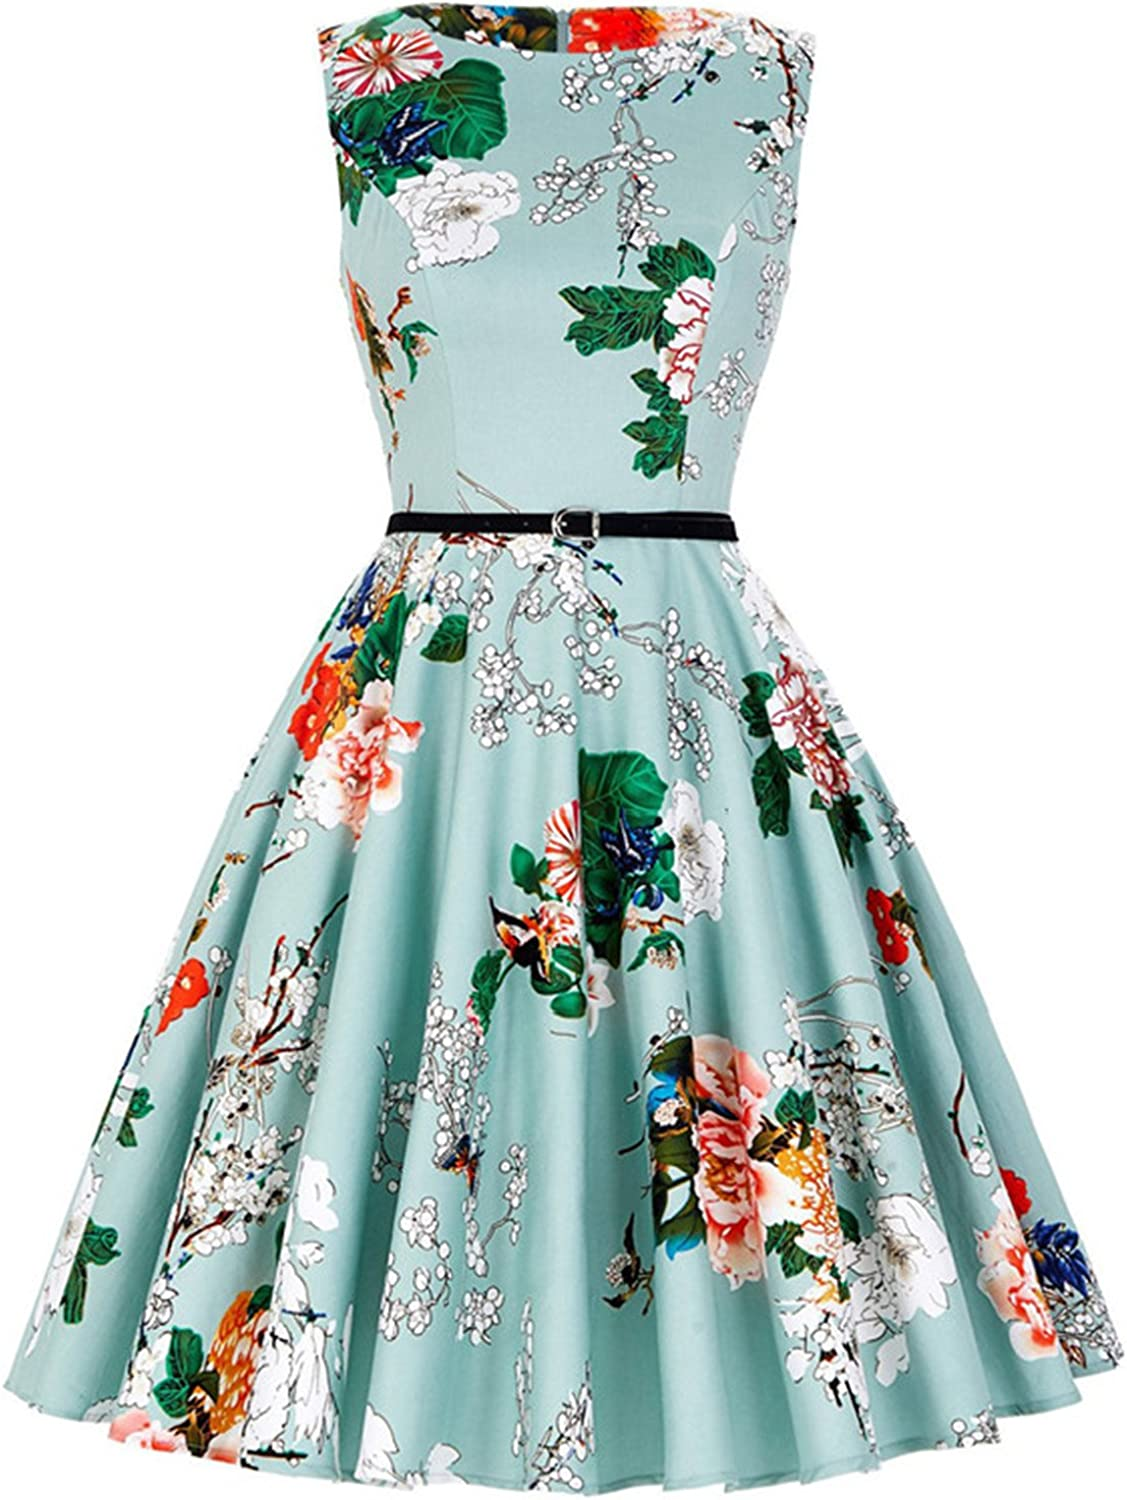 ANCHOVY Womens Vintage Sleeveless Short Prom Floral Spring Garden Tea Dress with Belt C72